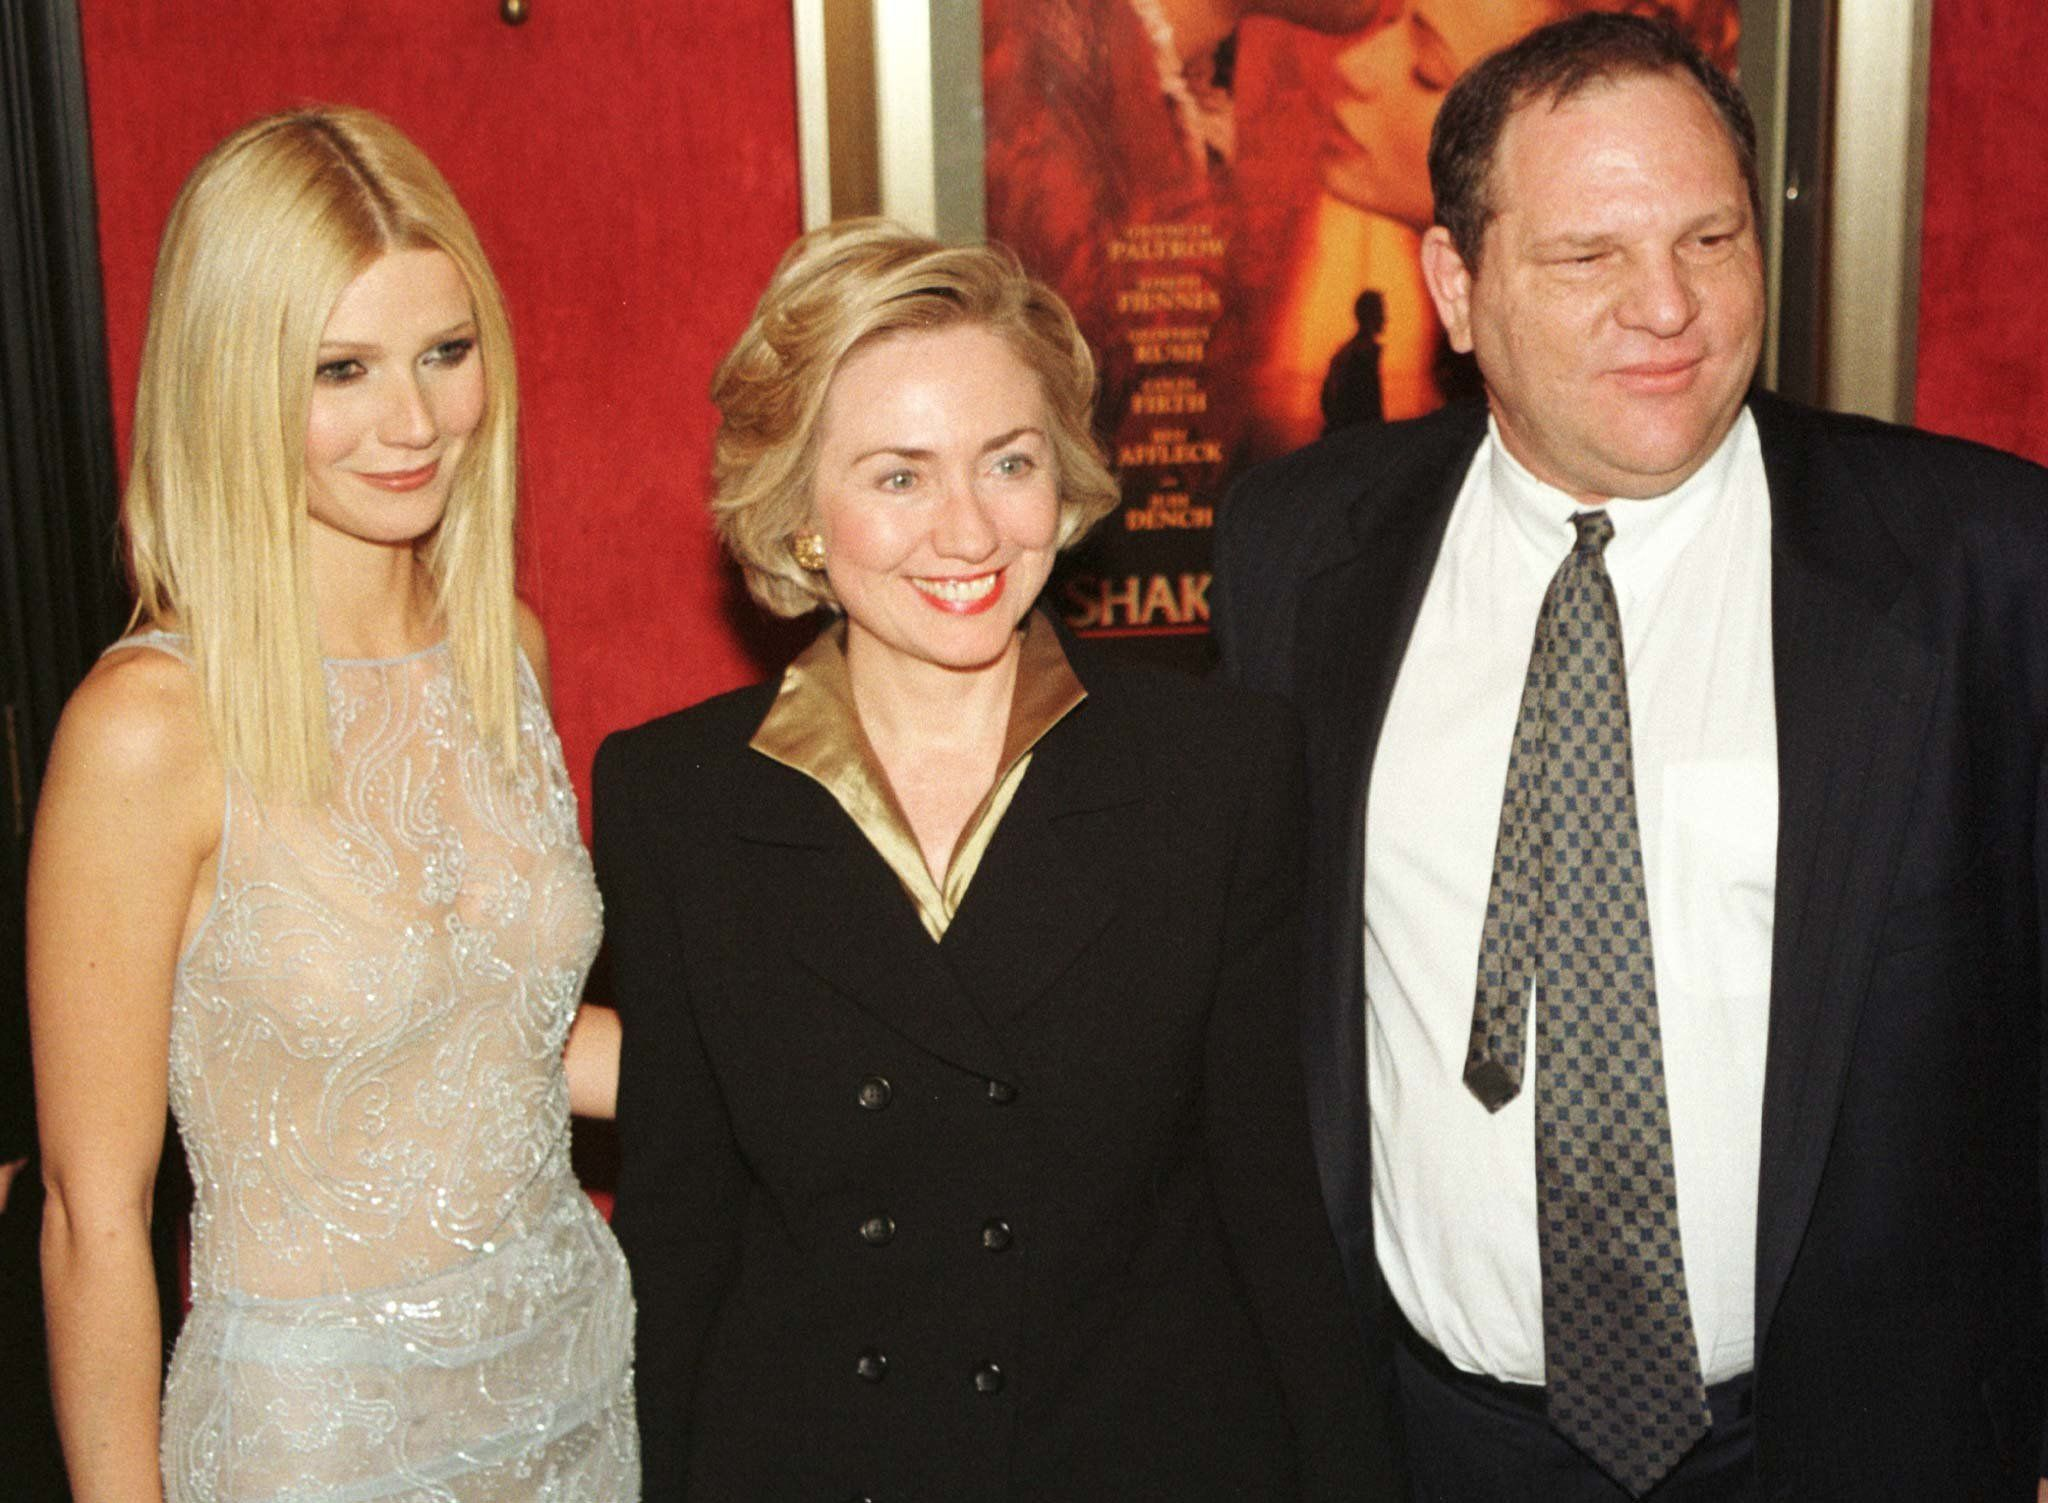 "Actress Gwyneth Paltrow (L) poses with first lady Hillary Rodham Clinton (C) and Miramax co-chairman Harvey Weinstein as they arrive for the premiere of ""Shakespeare in Love"" in New York on December 3. Clinton introduced the film, which stars Paltrow, Joseph Fiennes, and Geoffrey Rush. It opens in New York and Los Angeles on December 11 and nationally on Christmas Day.  PM/ELD"